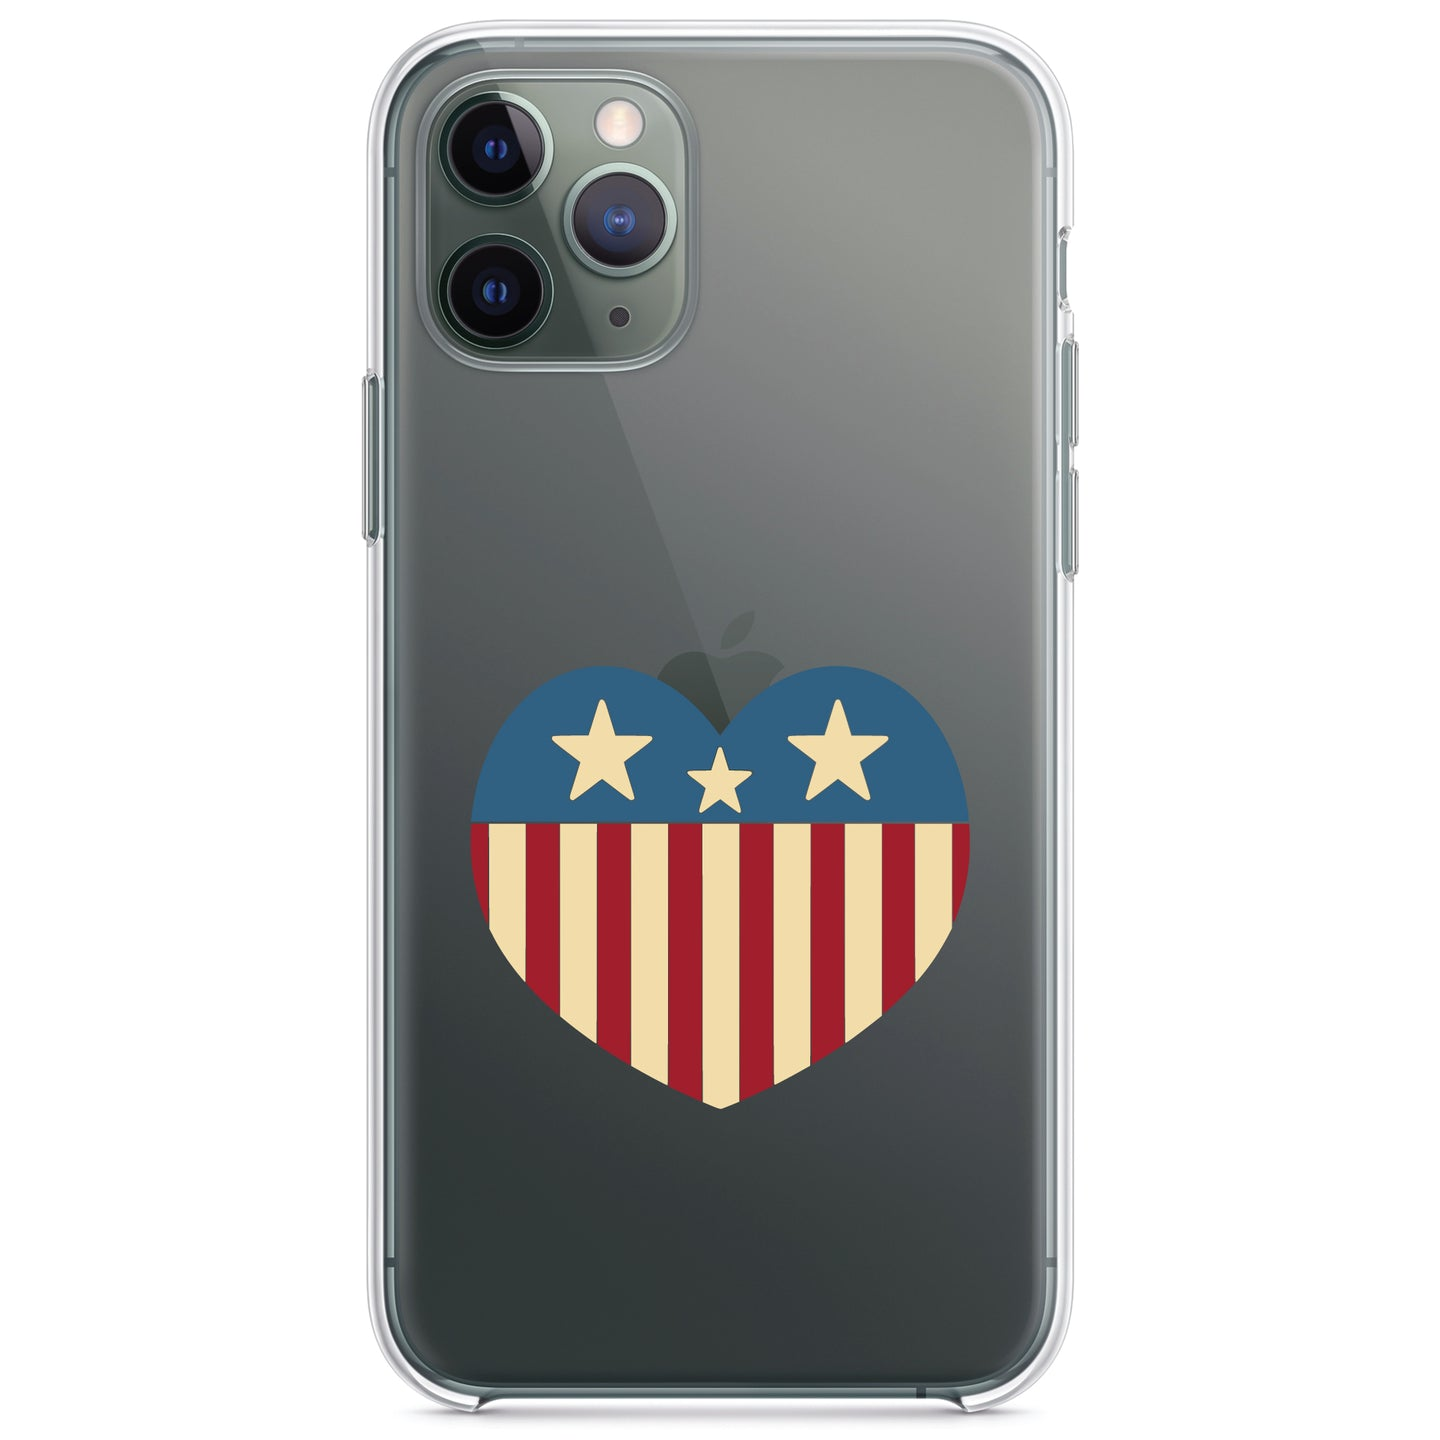 DistinctInk® Clear Shockproof Hybrid Case for Apple iPhone / Samsung Galaxy / Google Pixel - USA Heart Flag Red White & Blue